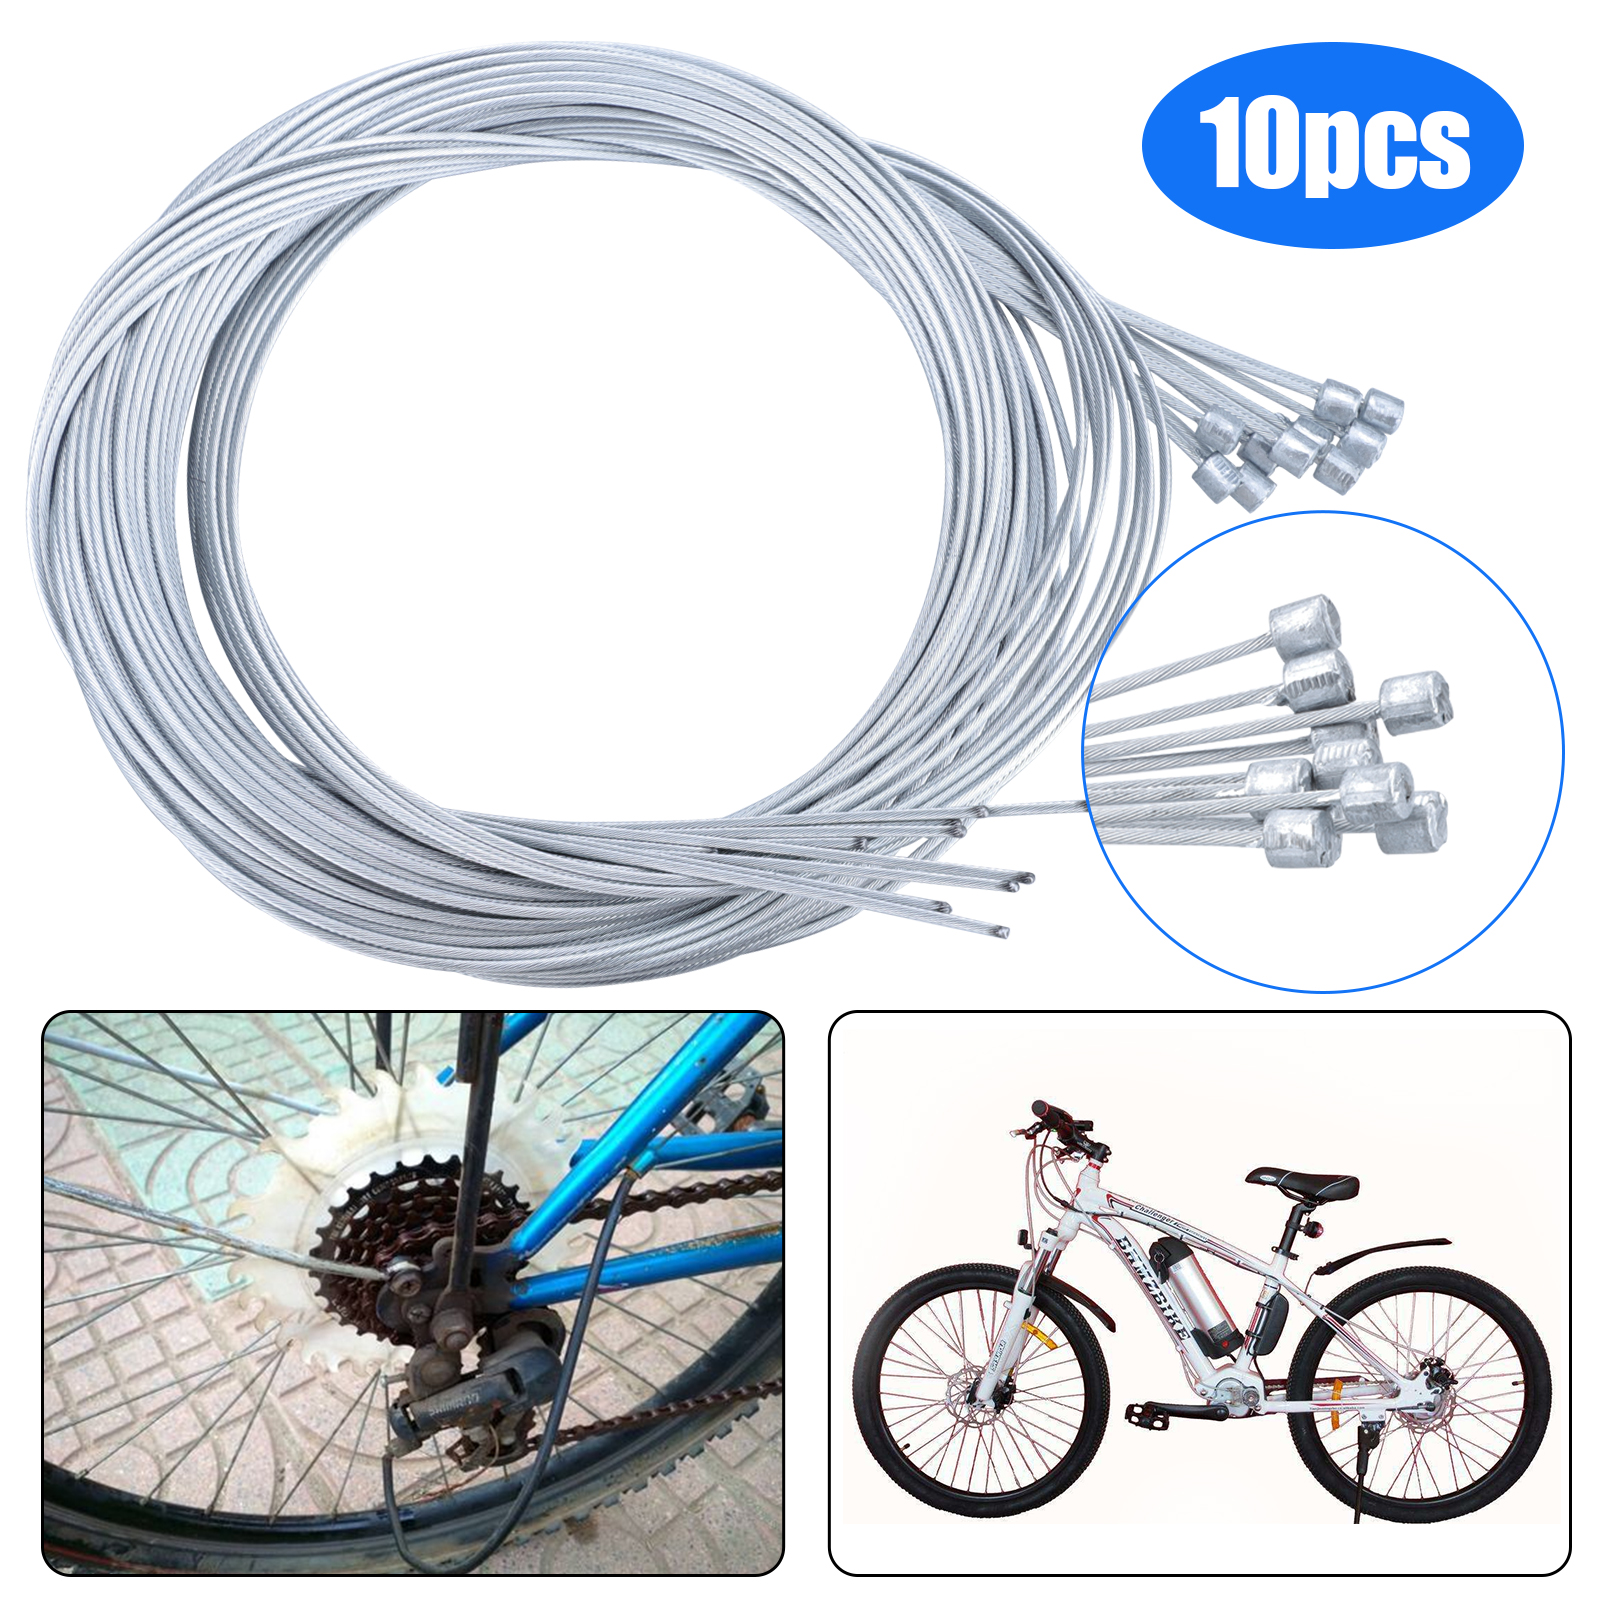 20 pcs Road Mountain Bike Bicycle Brake Derailleur Shifting Line Pipe CableCa-L8